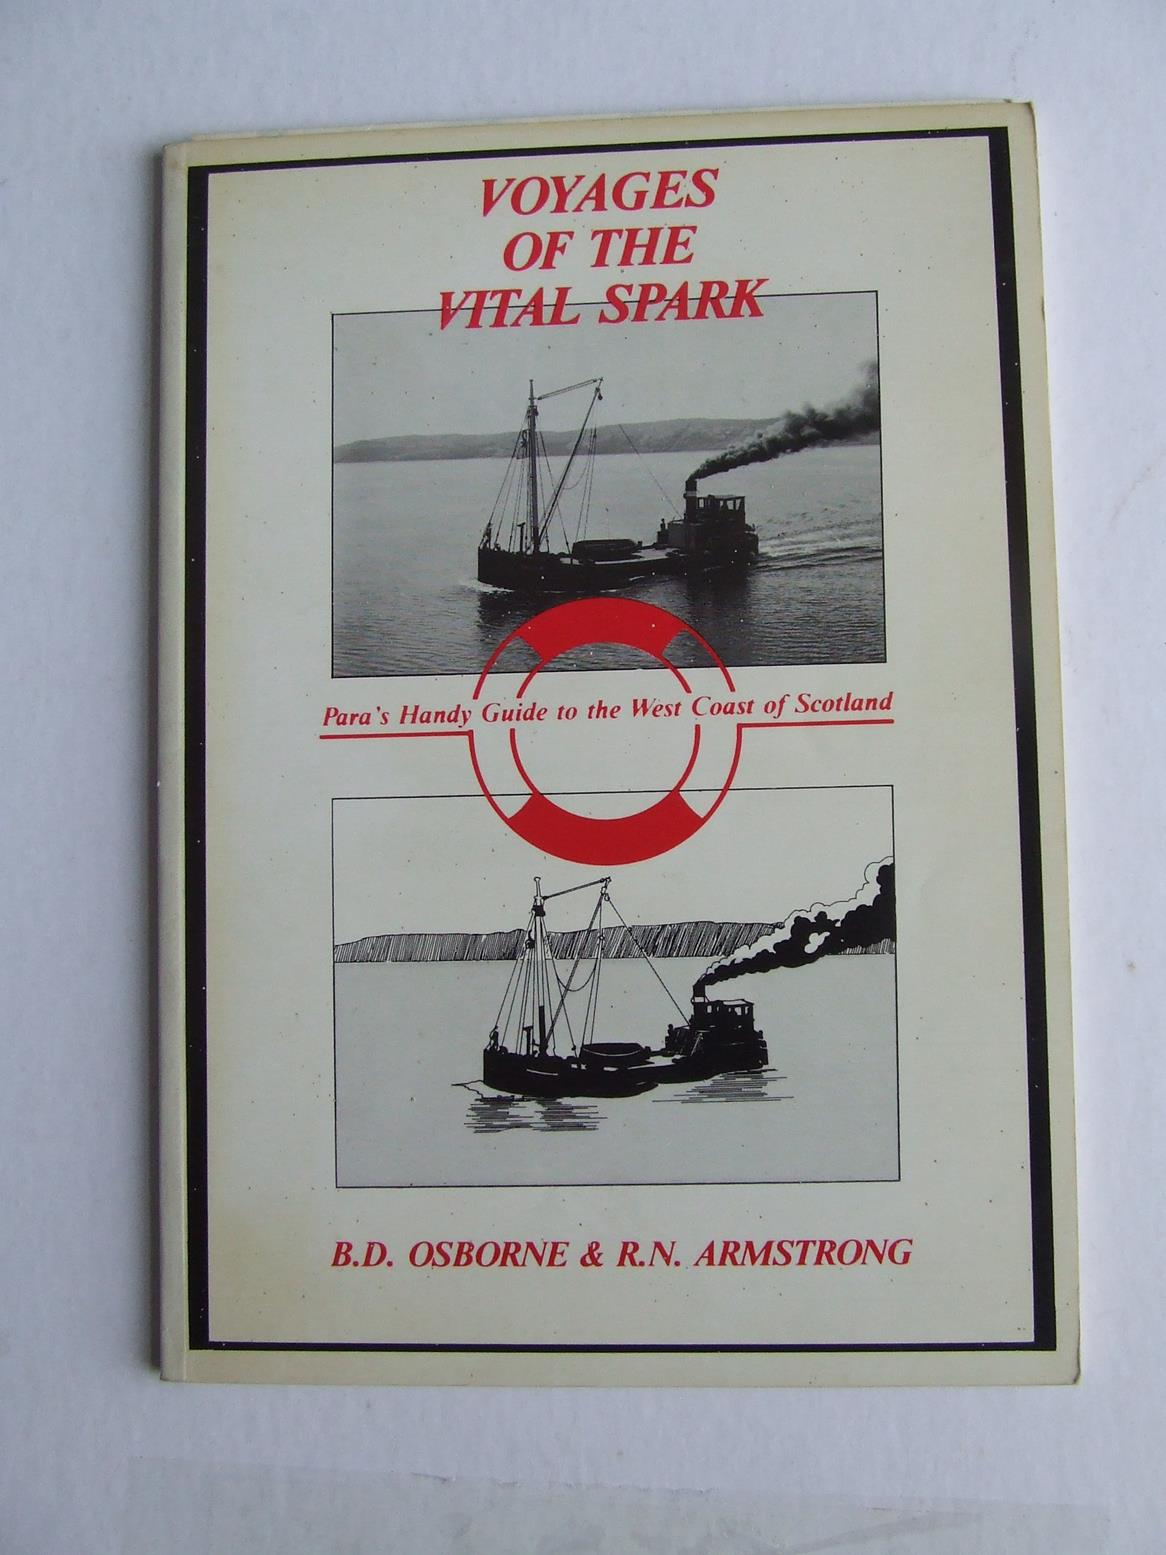 Voyages of the 'Vital Spark', Para Handy's guide to the west coast of Scotland